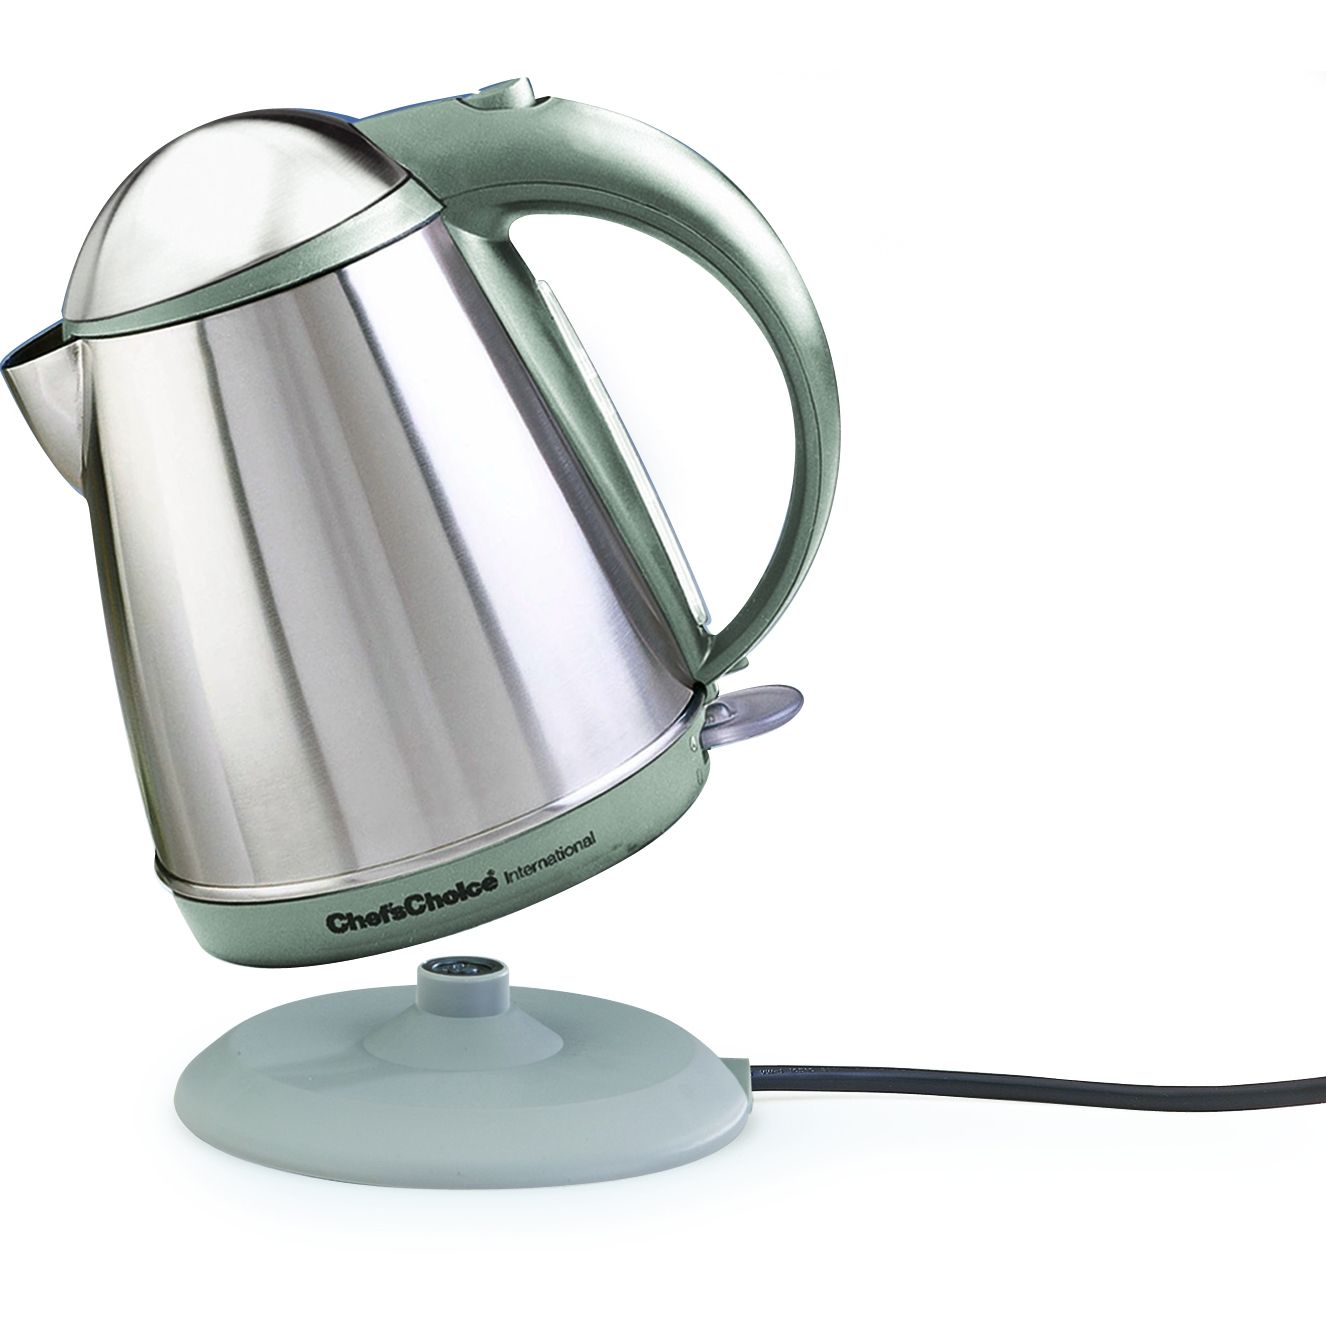 Chef's Choice Stainless Steel Cordless Electric Kettle